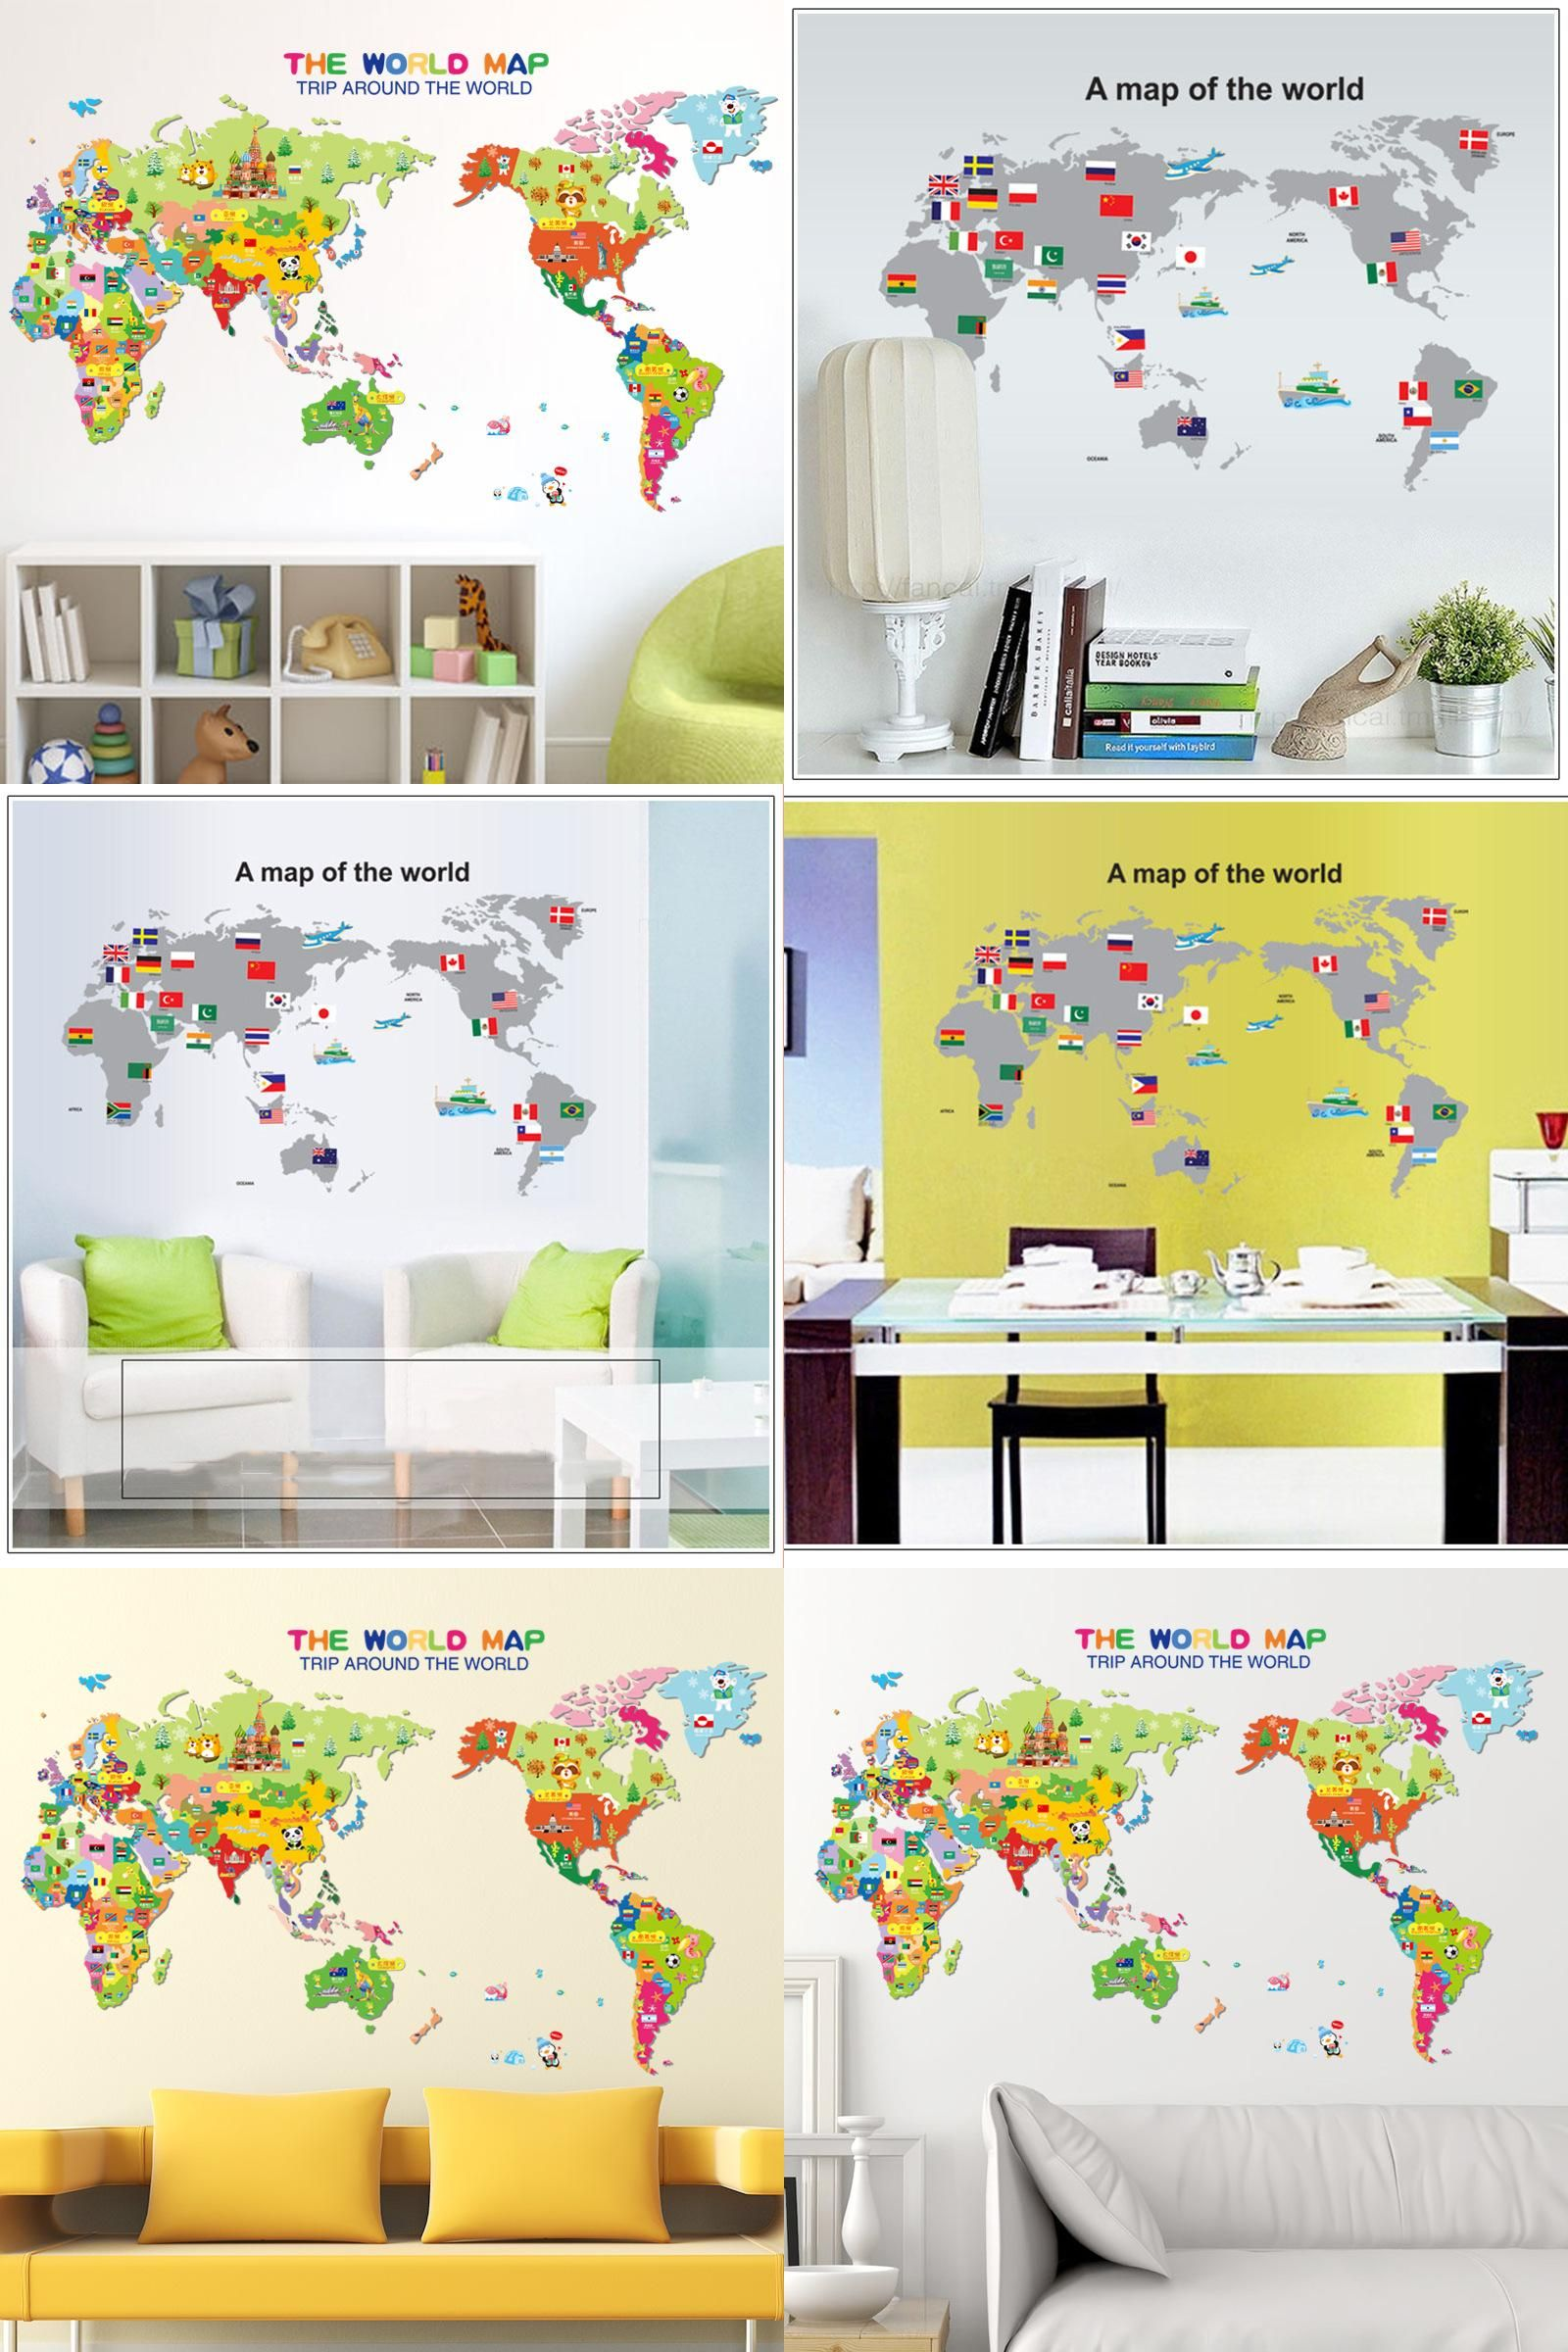 Visit to Buy] 2017 New The World Map Flag Sticker 3D DIY Vinyl Wall ...